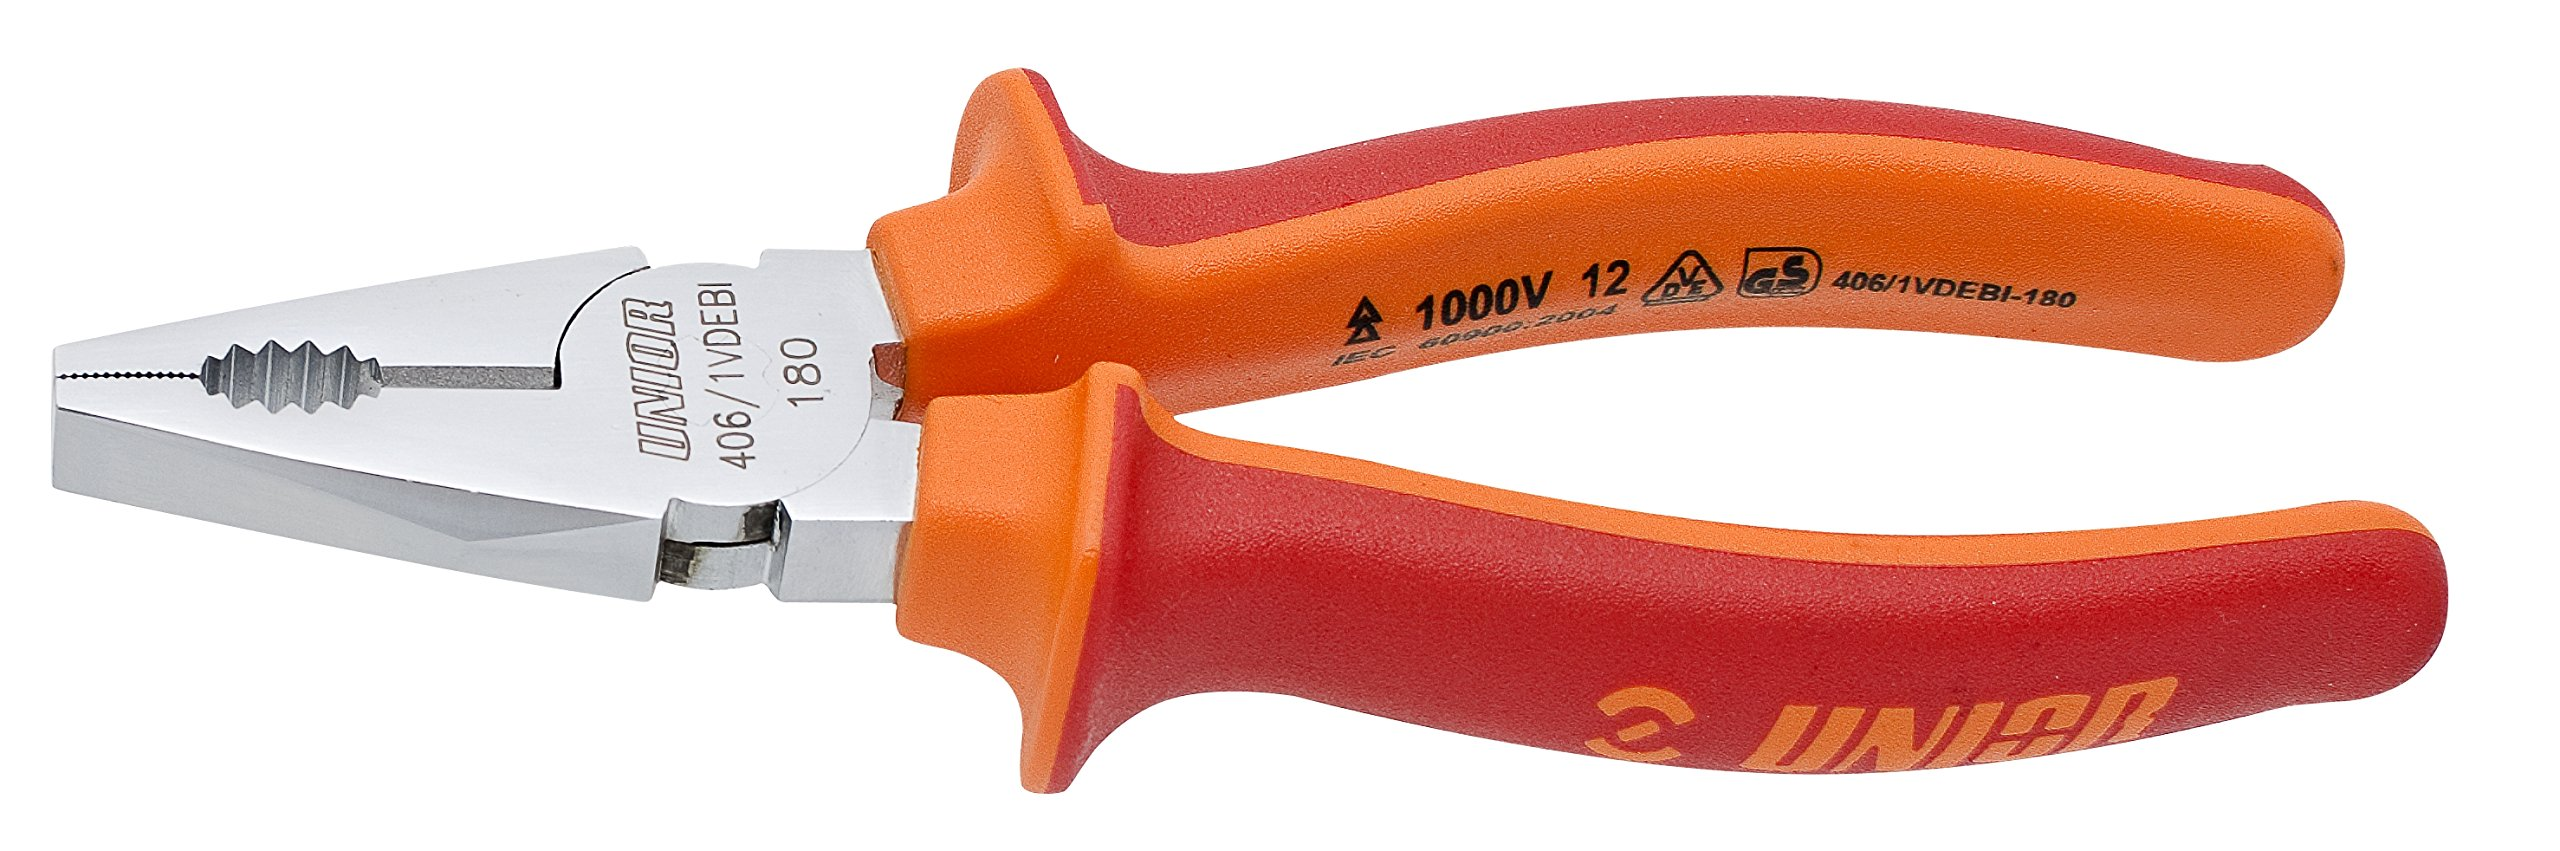 Unior 9610422 Combi Pliers Insulated, 180 mm